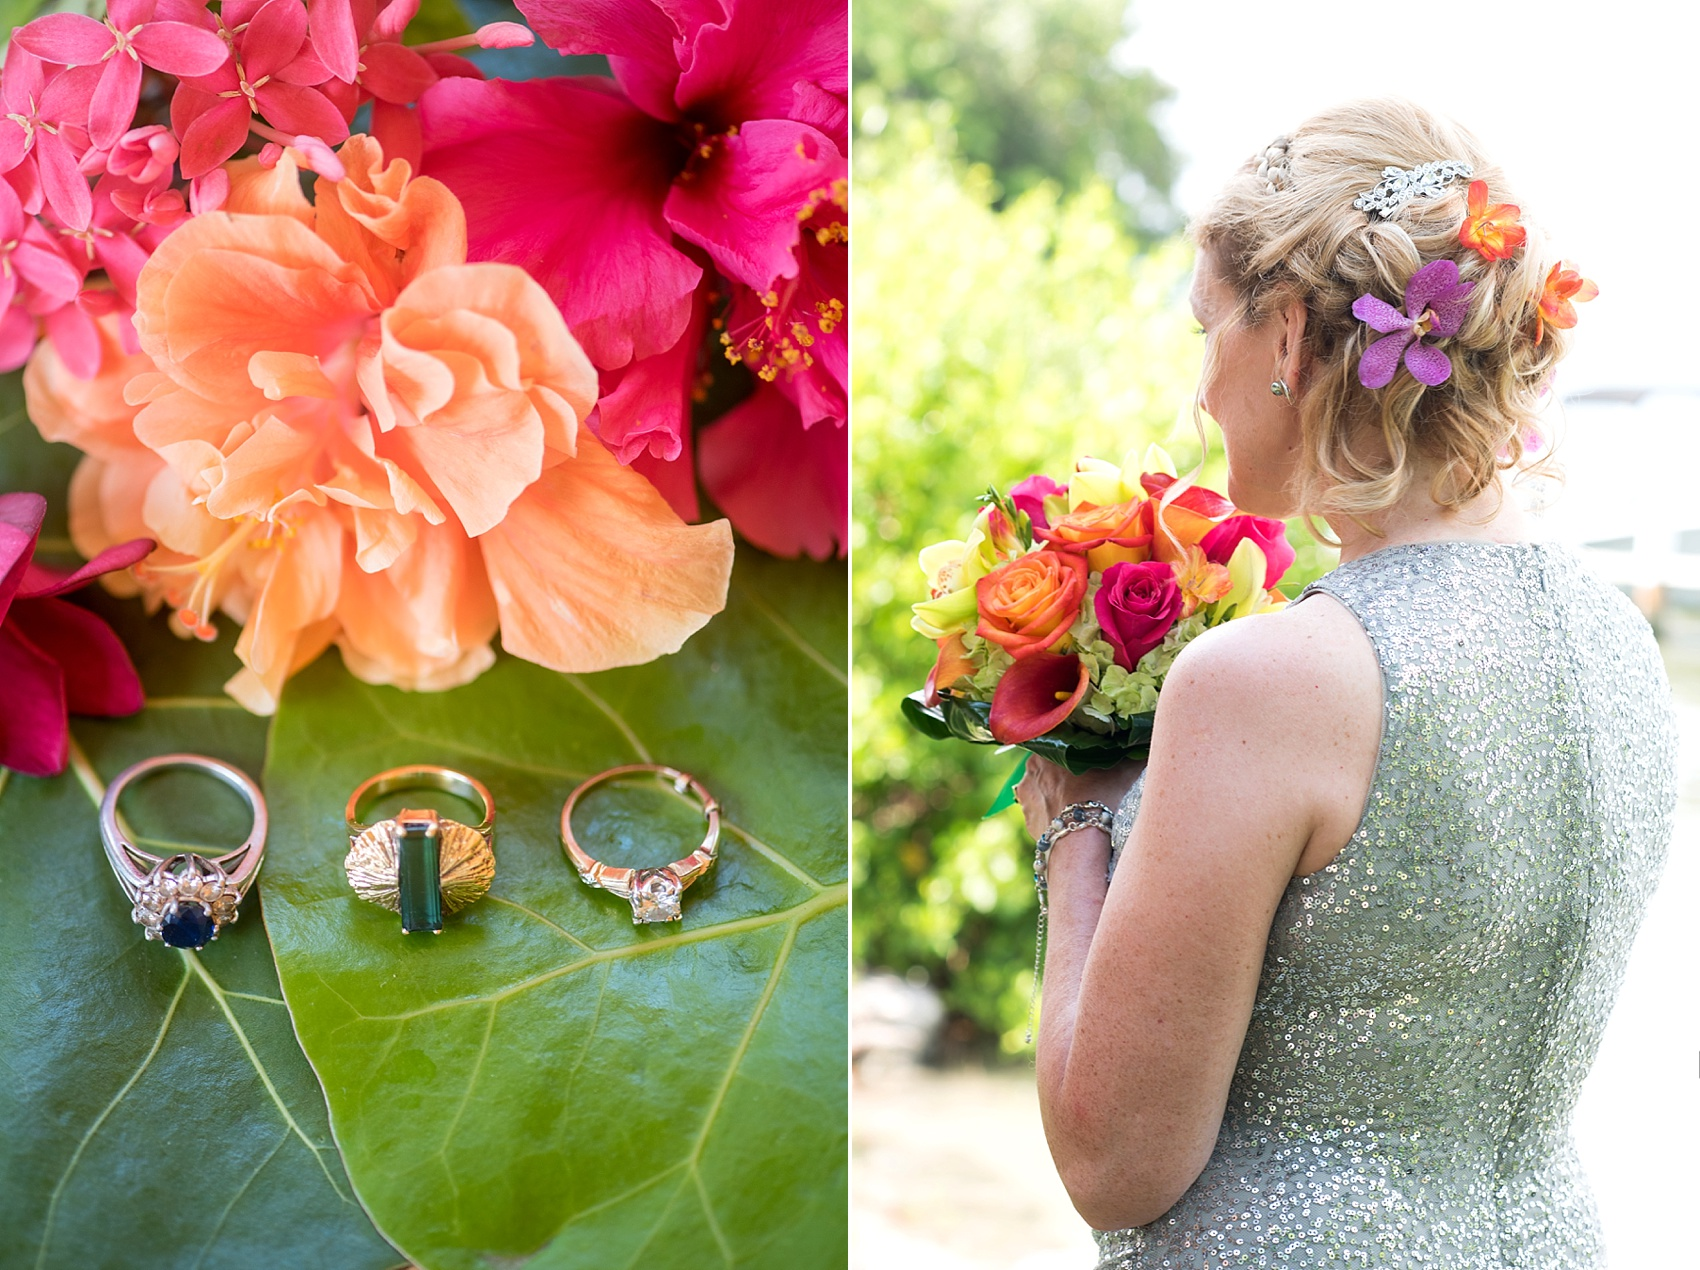 Captiva Island unique wedding rings for a beach ceremony at Tween Waters Inn. Photos by Mikkel Paige Photography.